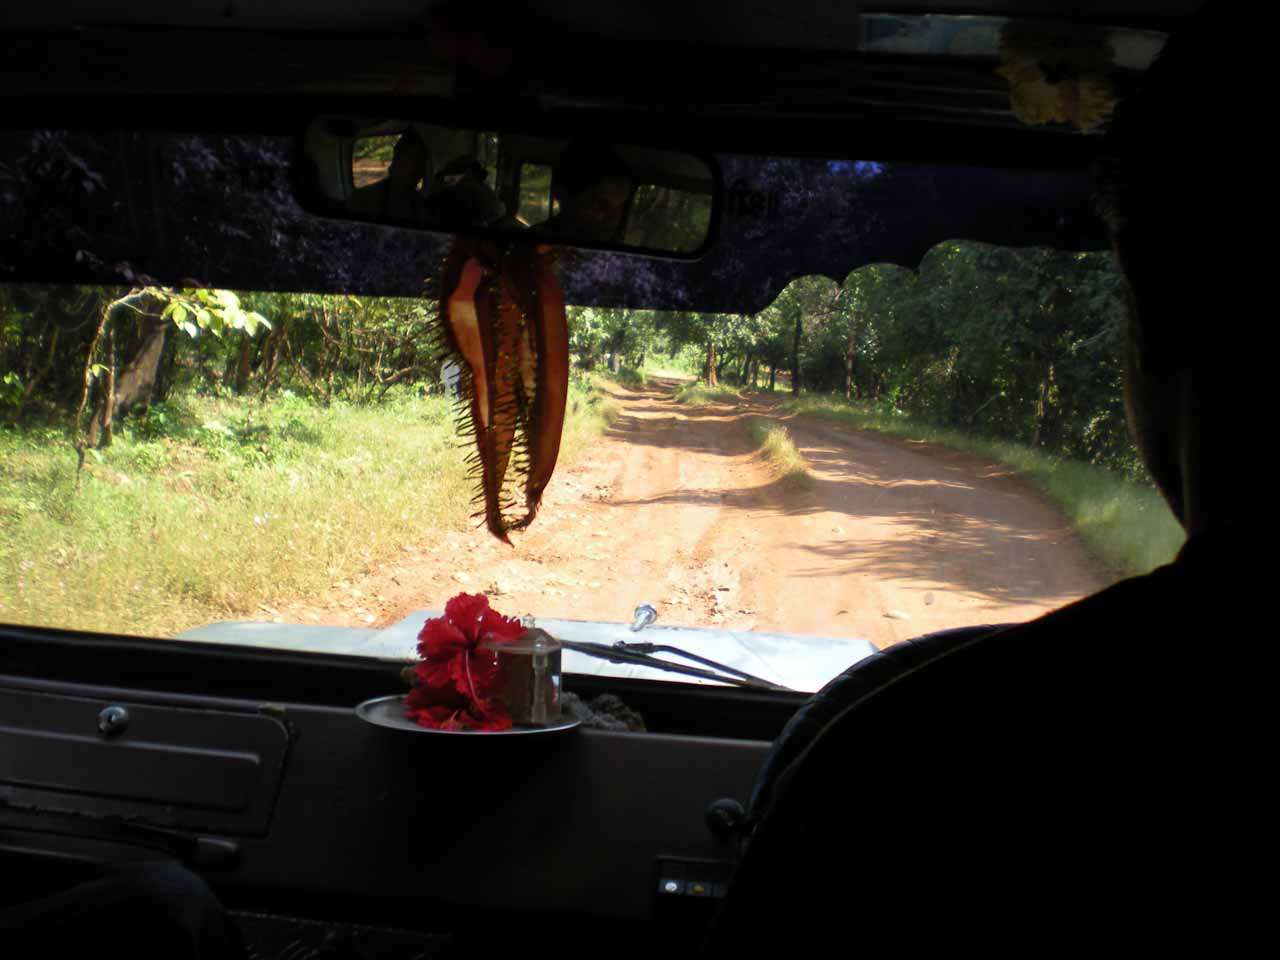 On the 4wd path headed closer to Dudhsagar Falls